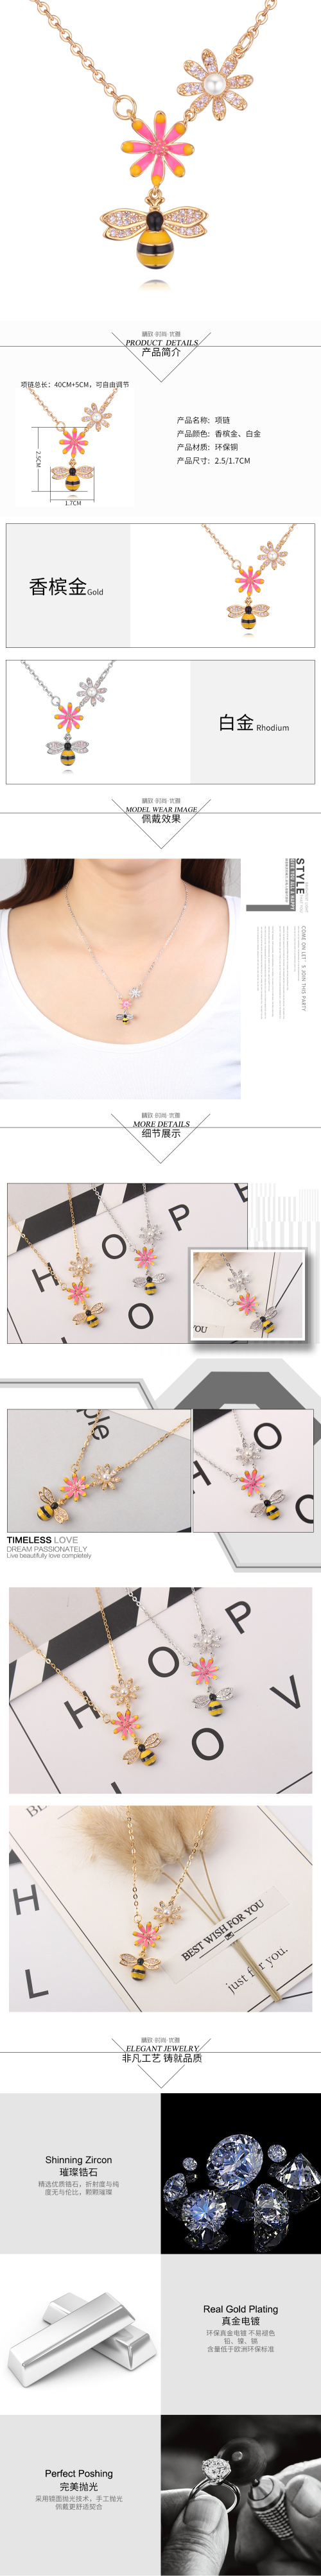 Alloy Necklace---Bee Love Flower (Champagne Alloy) NHKSE28803